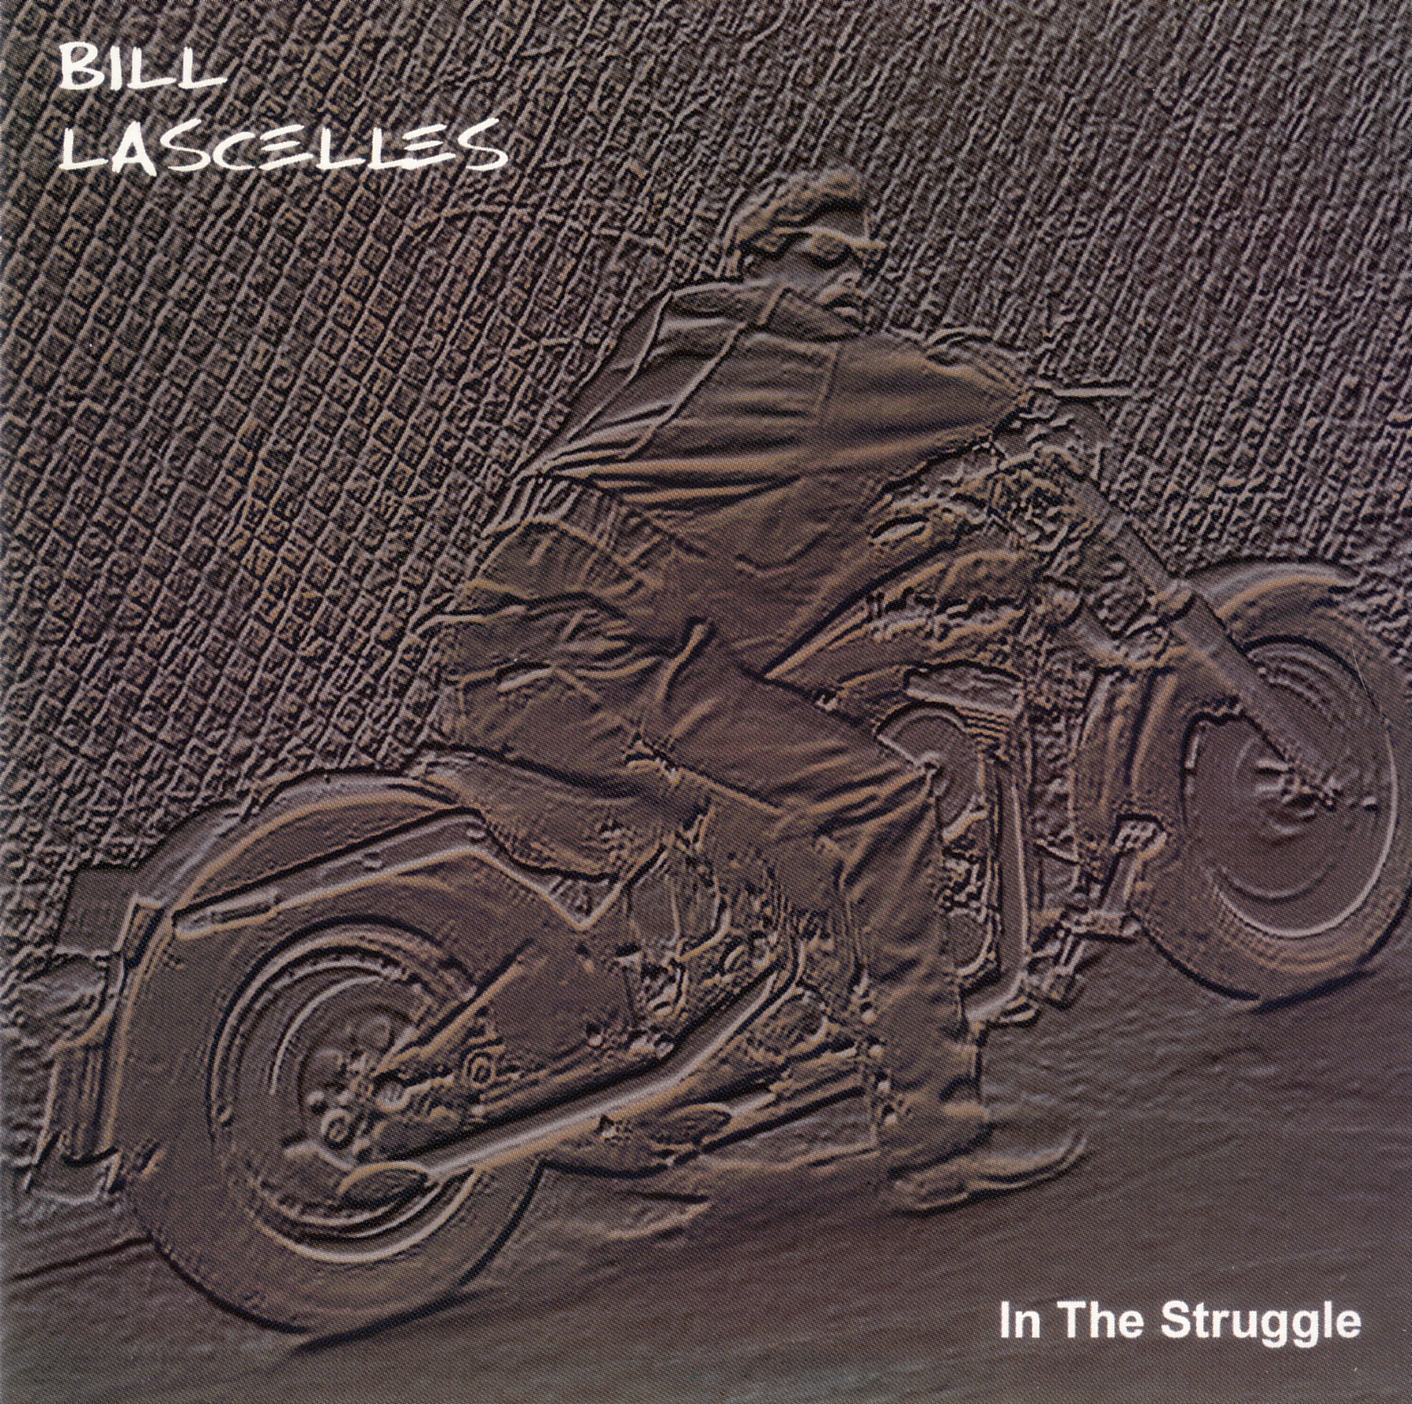 Bill Lascelles - In The Struggle